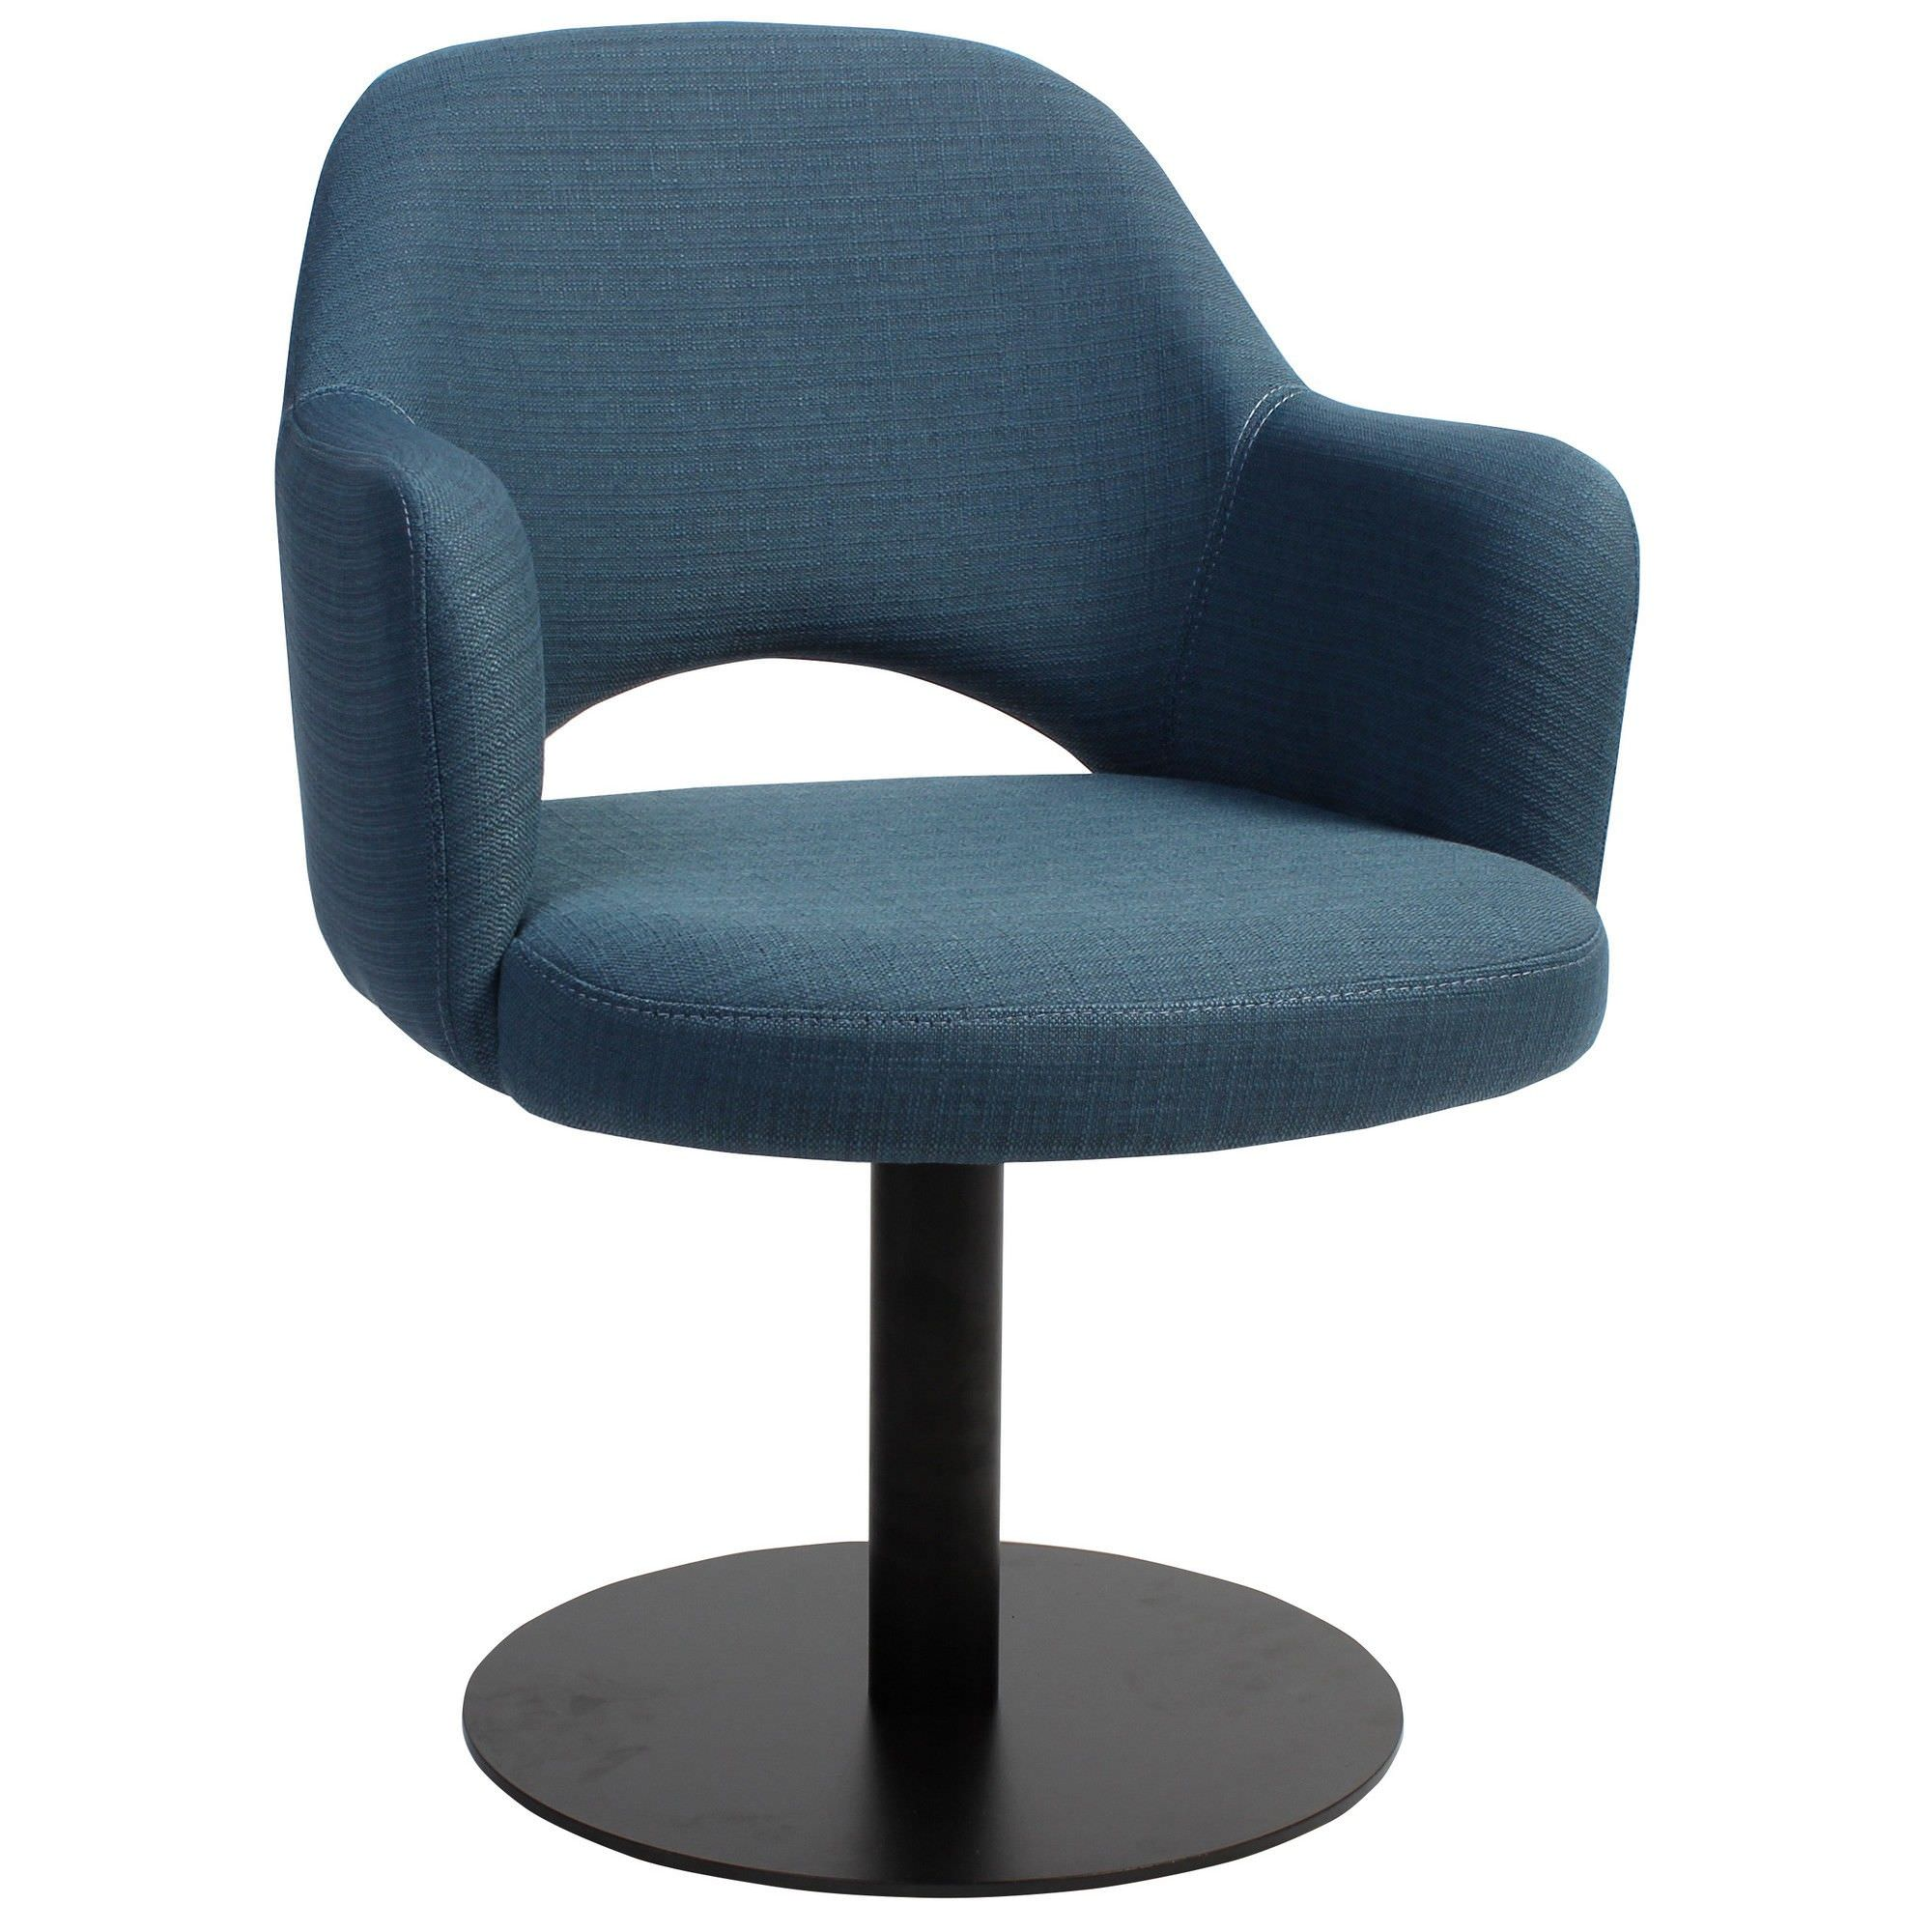 Albury Commercial Grade Fabric Dining Stool with Arm, Metal Disc Base, Blue / Black